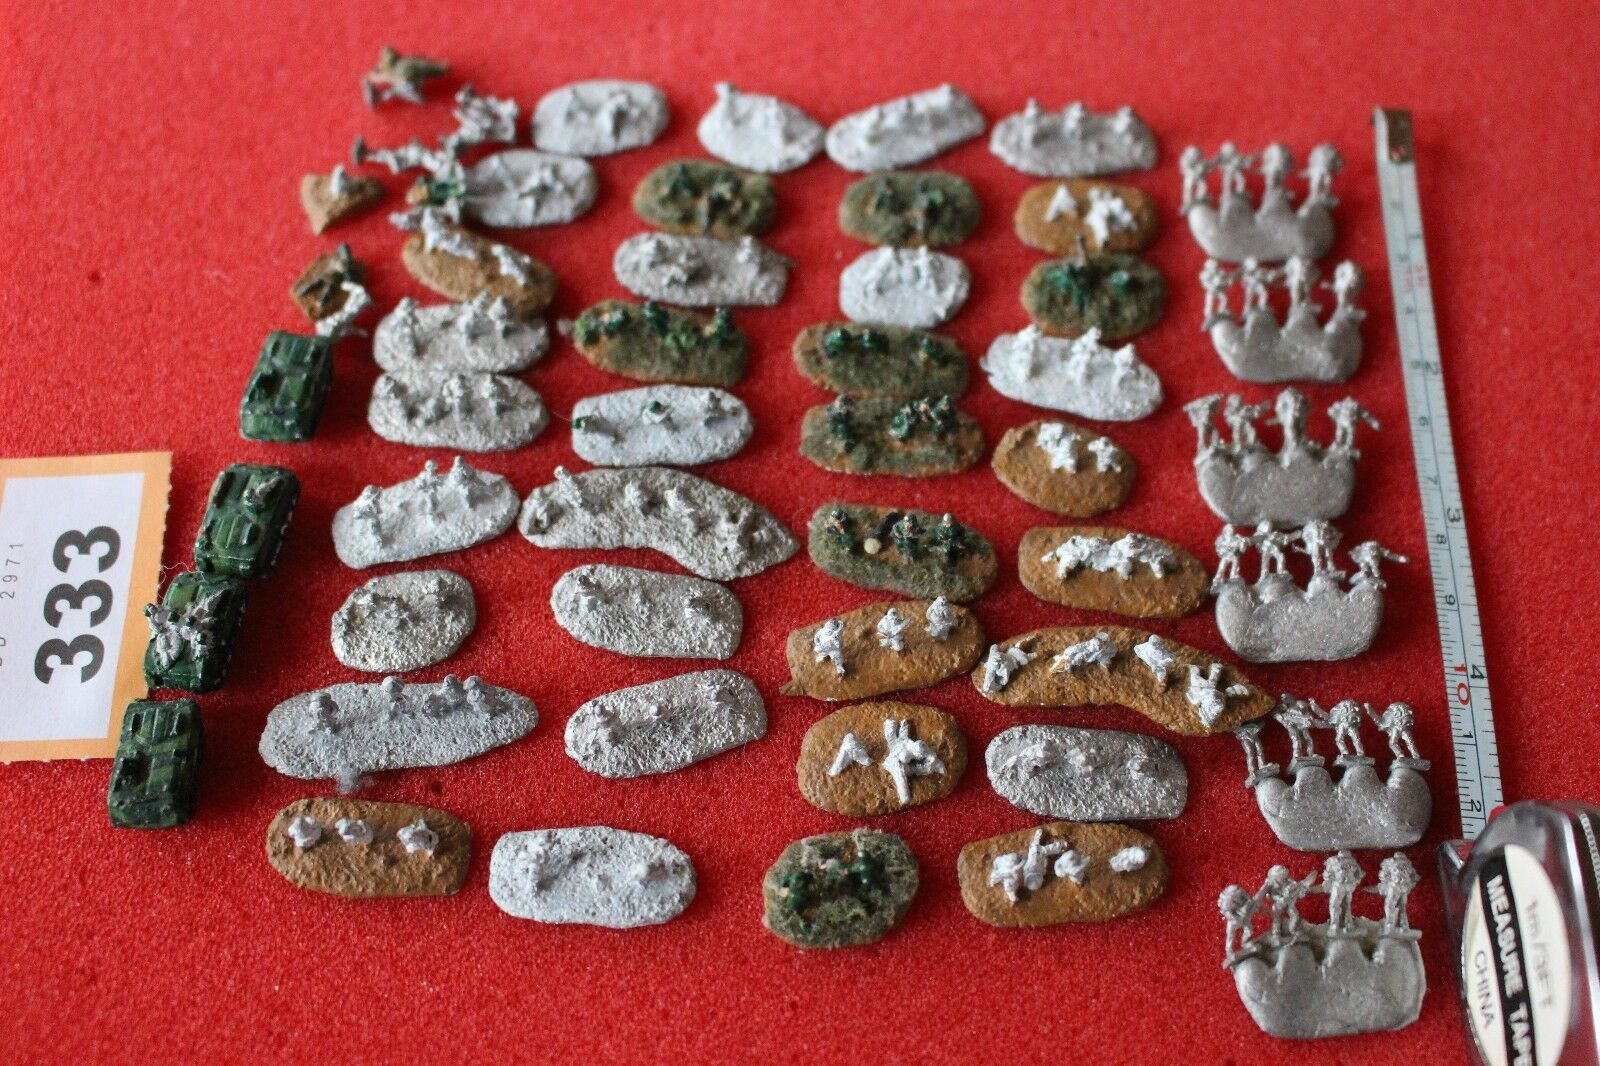 Unknown Manufacturer Tiny Scale Metal Figures Models Job Lot Army Flames of War